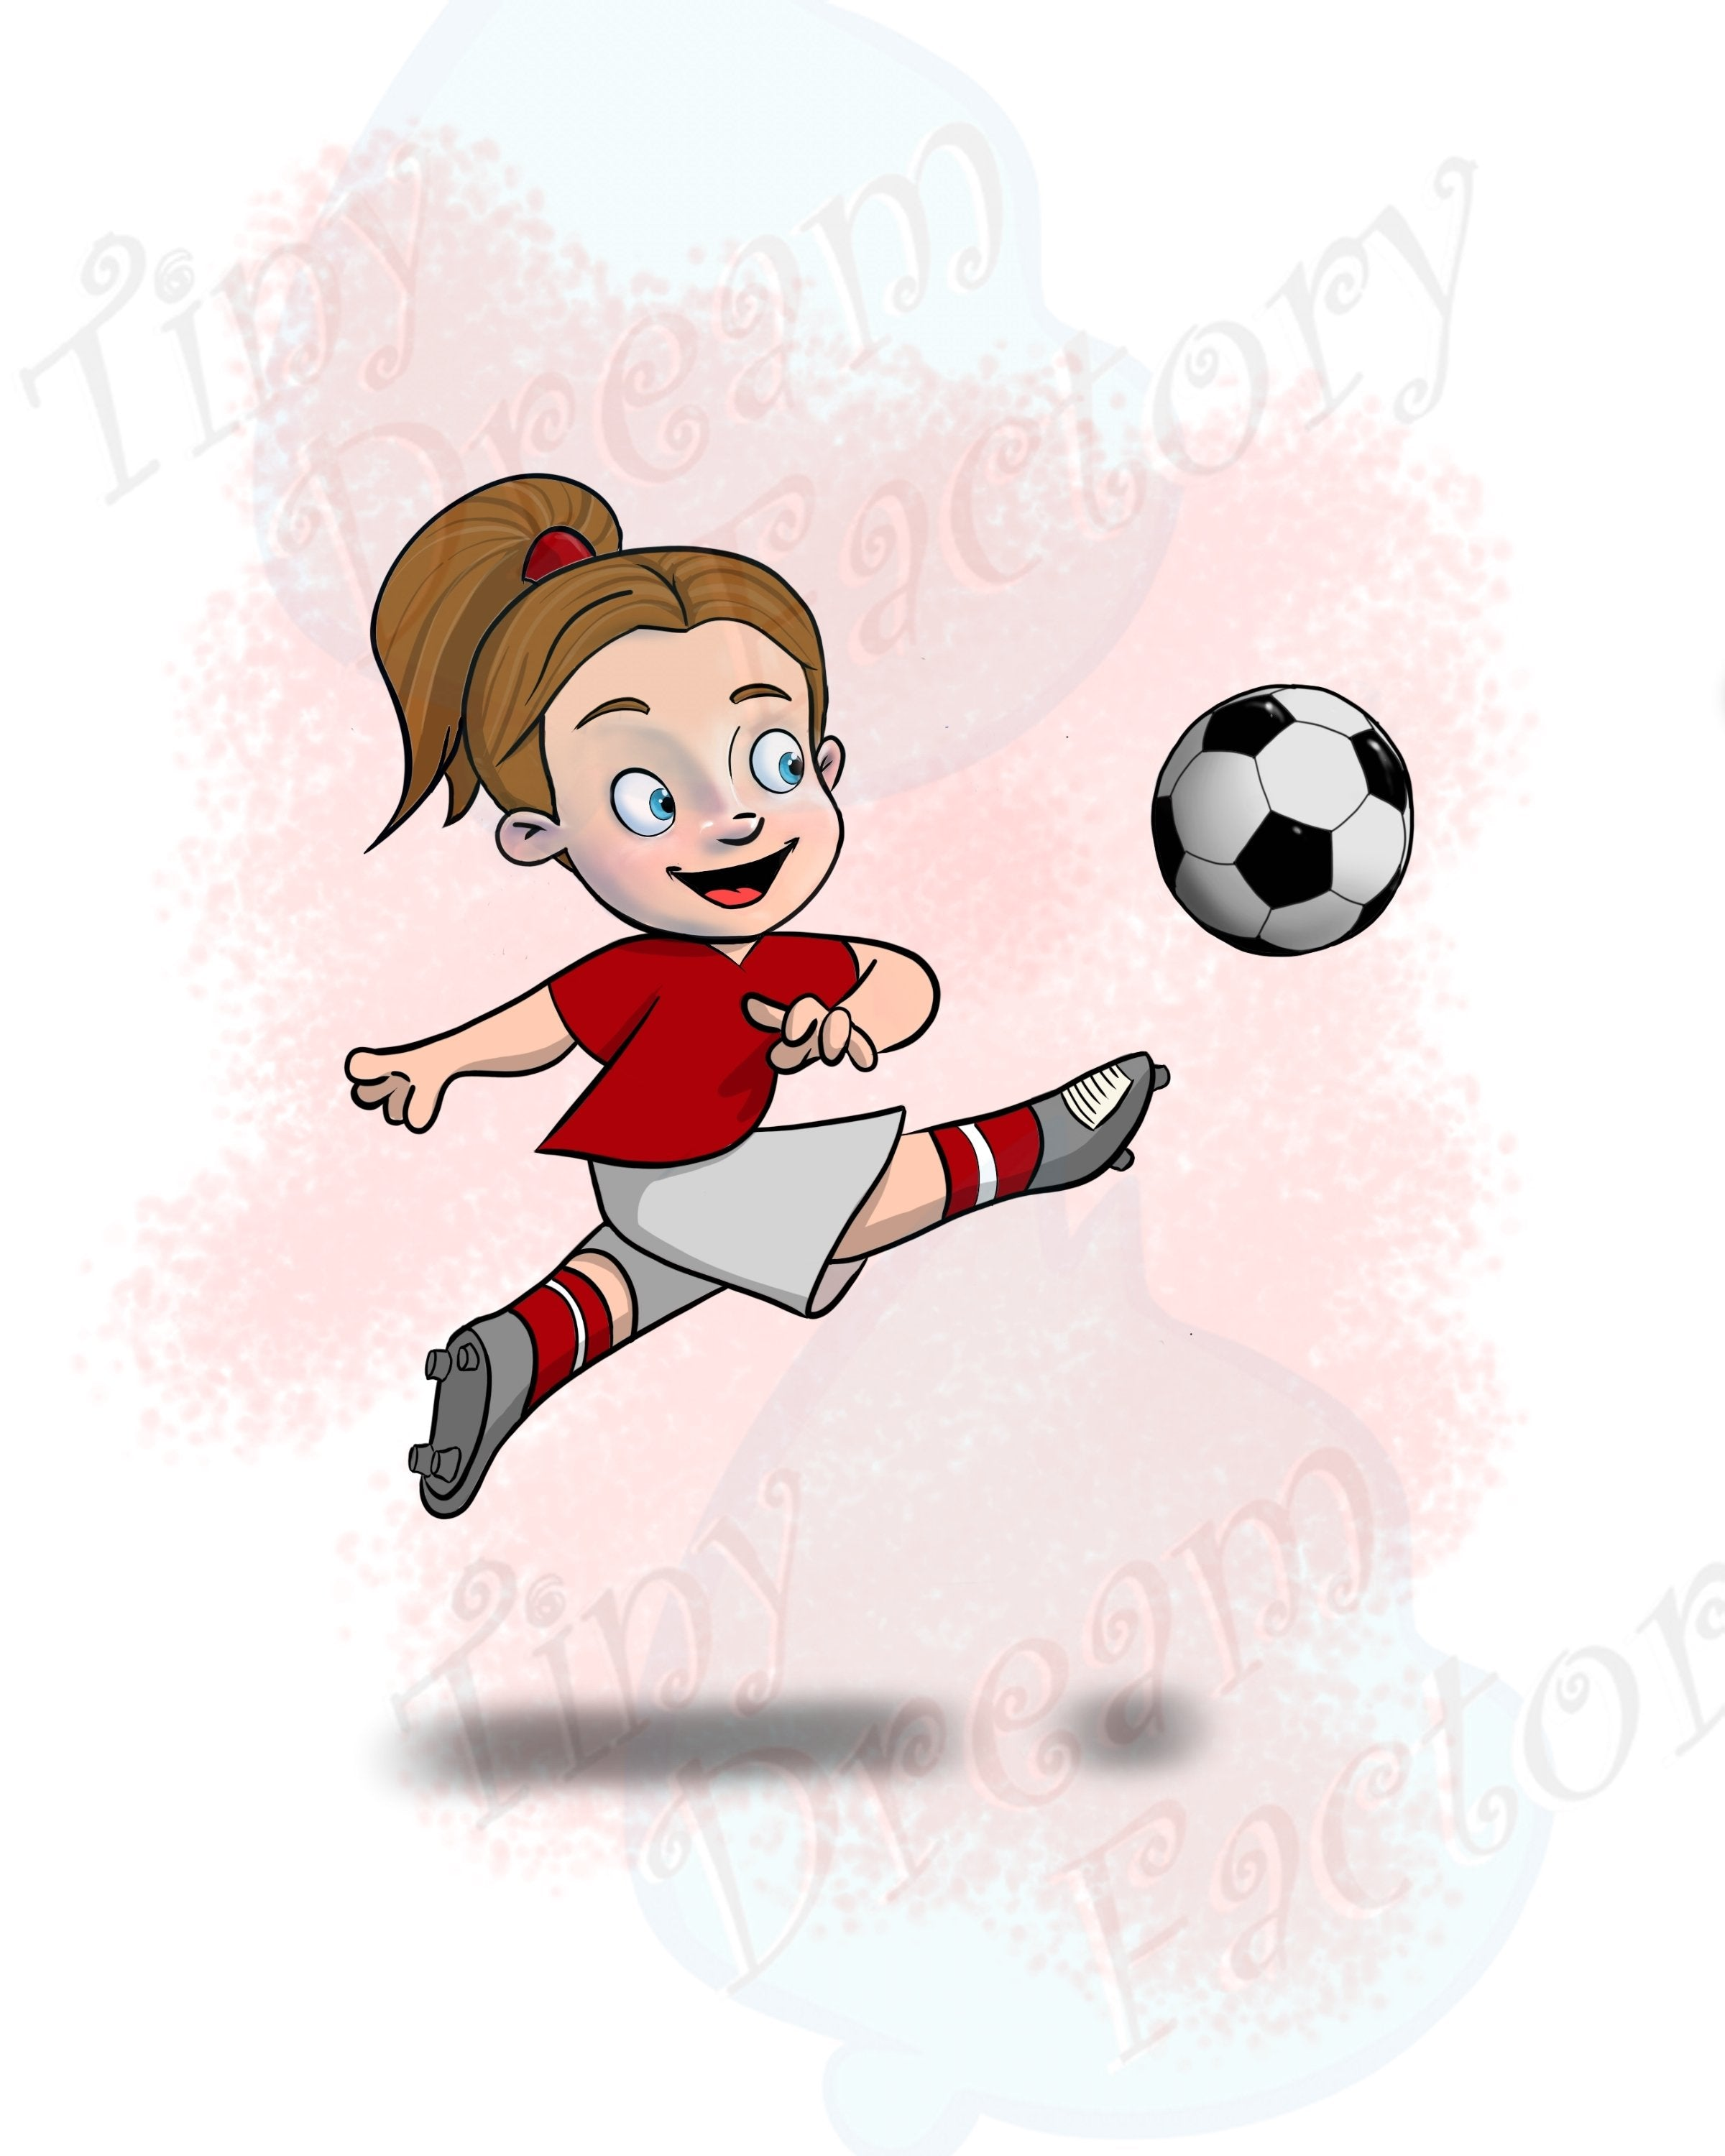 Soccer Player - Girl - Tiny Dream Factory